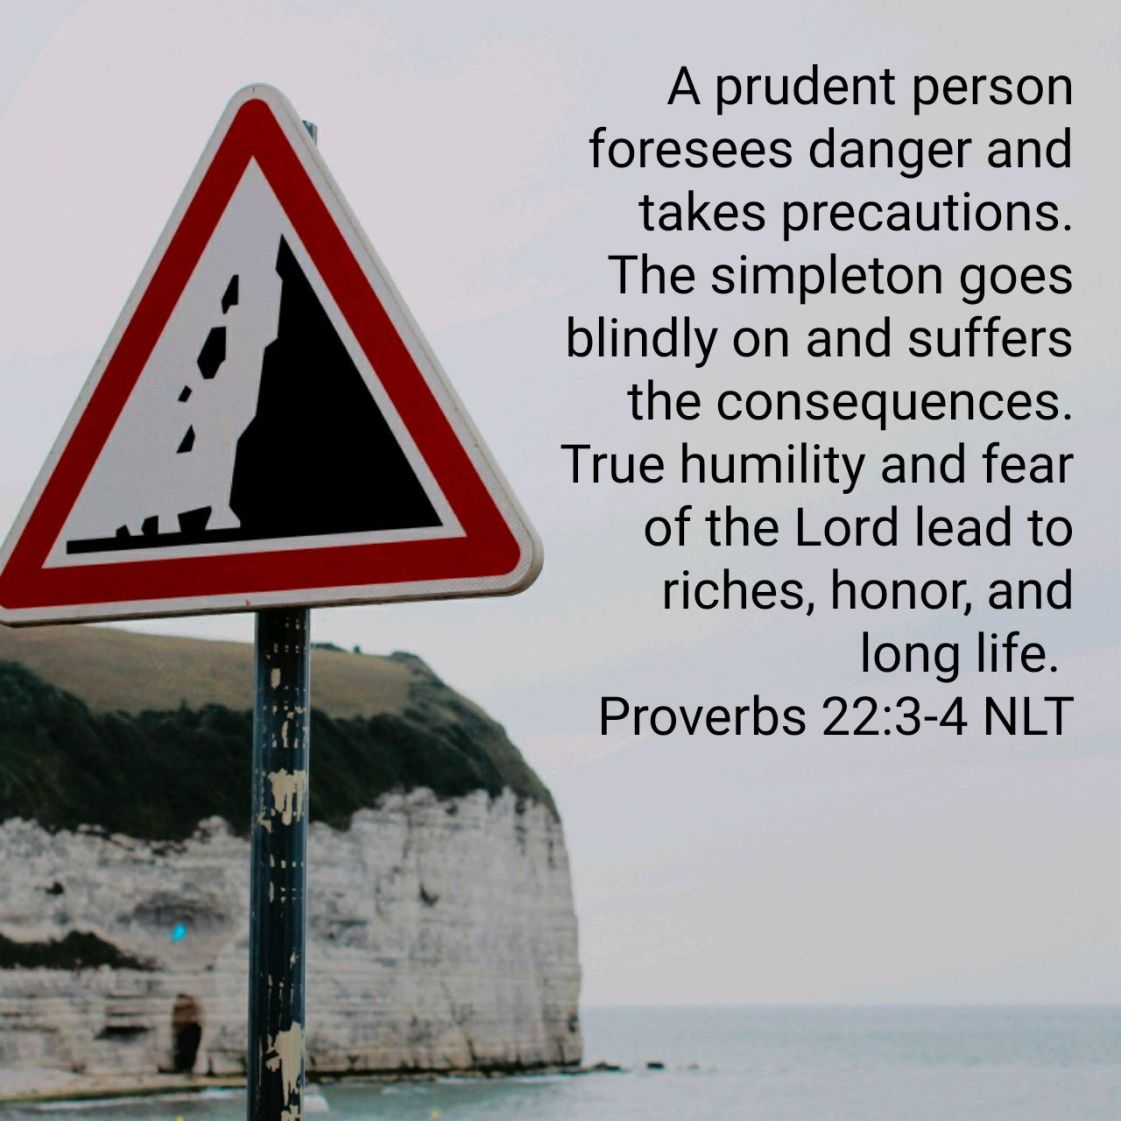 A prudent person foresees danger and takes precautions. The simpleton goes blindly on and suffers the consequences. True humility and fear of the Lord lead to riches, honor, and long life. - Proverbs 22:3-4 NLT